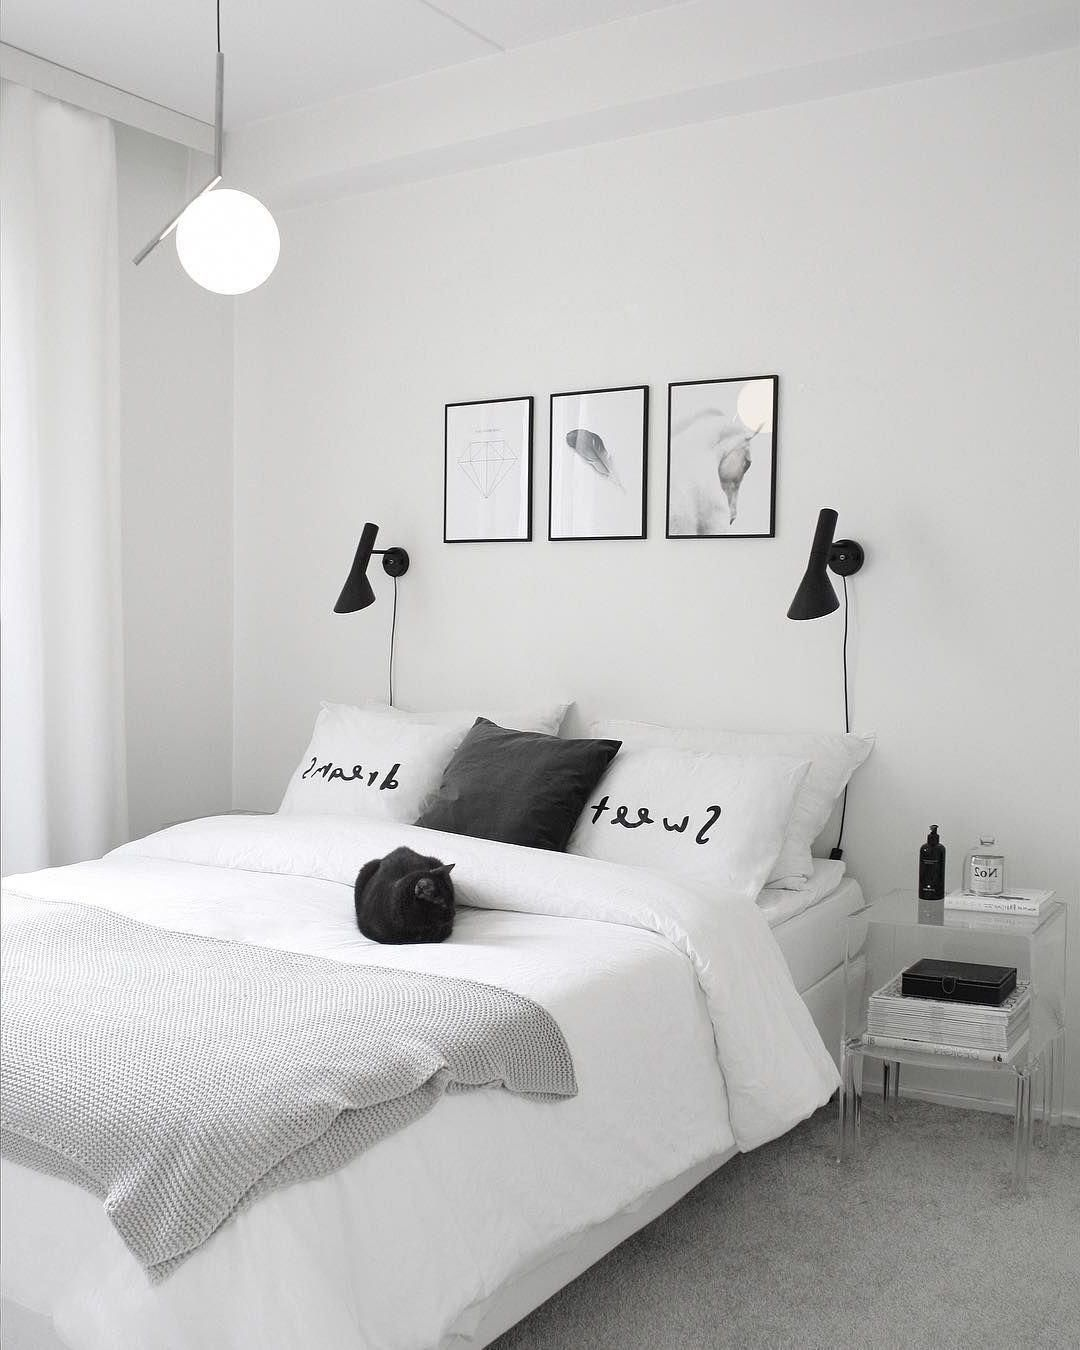 How To Transform Your Bedroom Into Black And White Color Scheme White And Silver Bedroom Minimalist Bedroom Decor